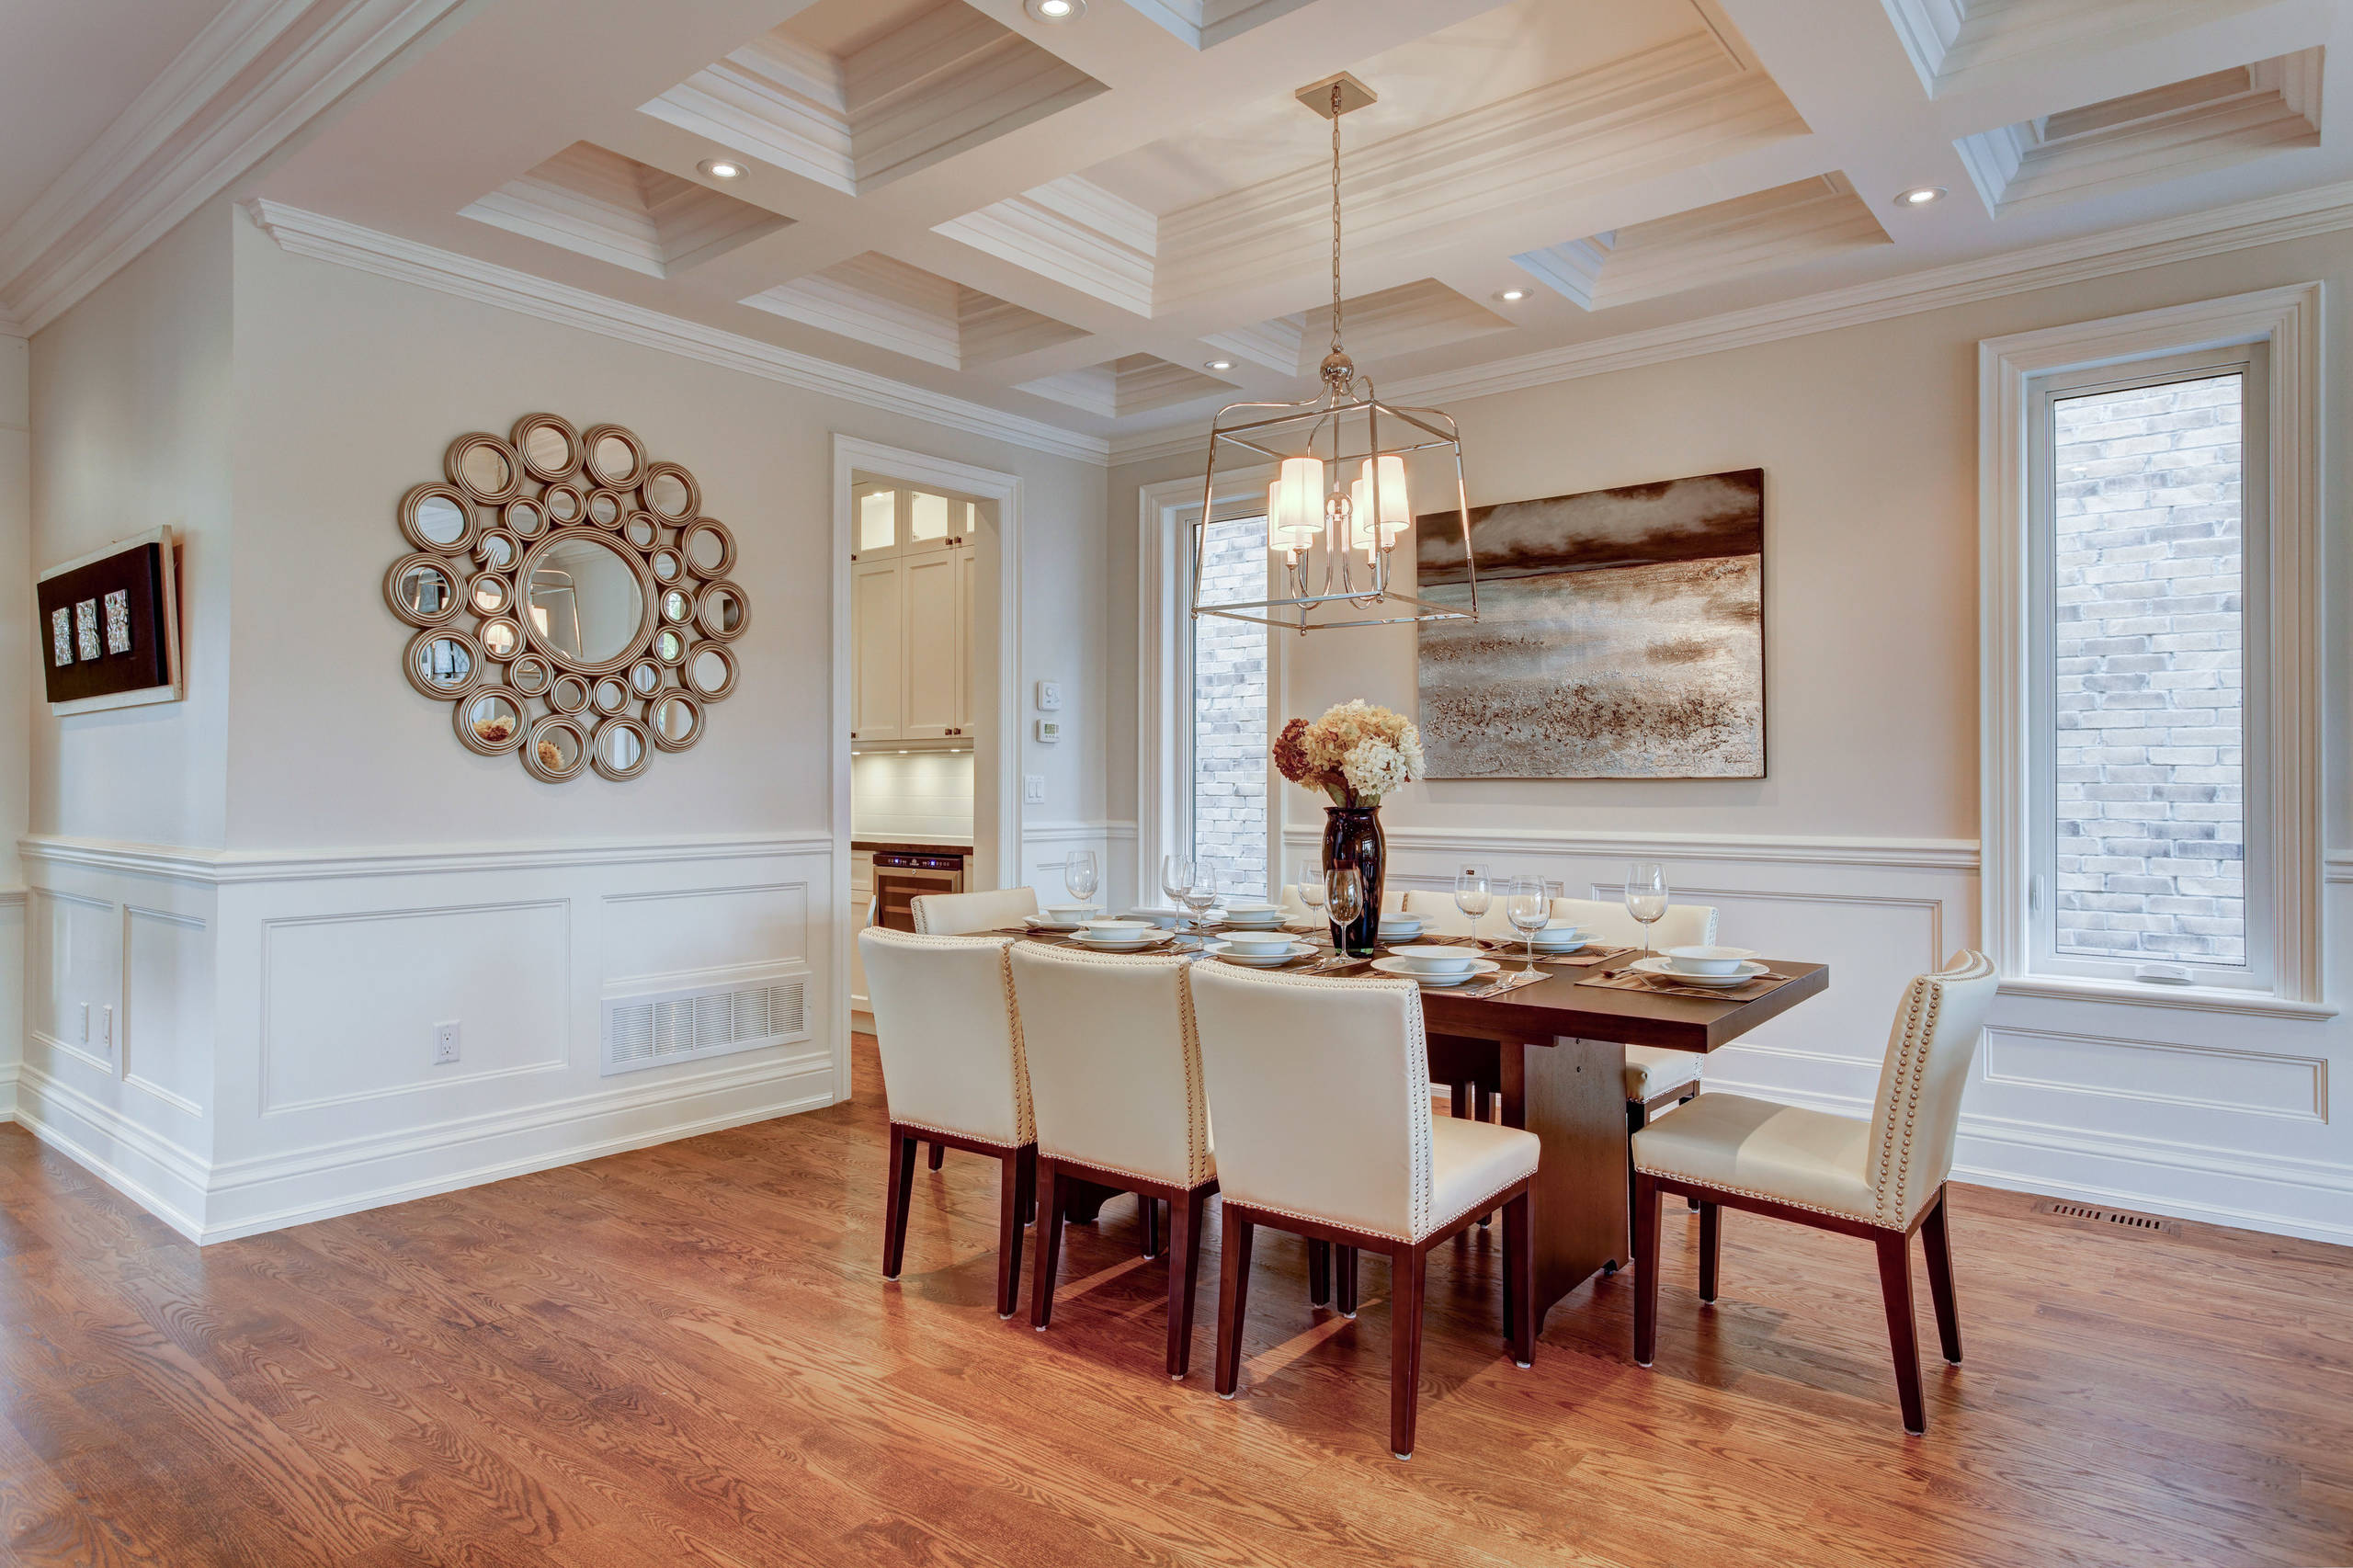 75 Beautiful Wainscoting Dining Room Pictures Ideas February 2021 Houzz